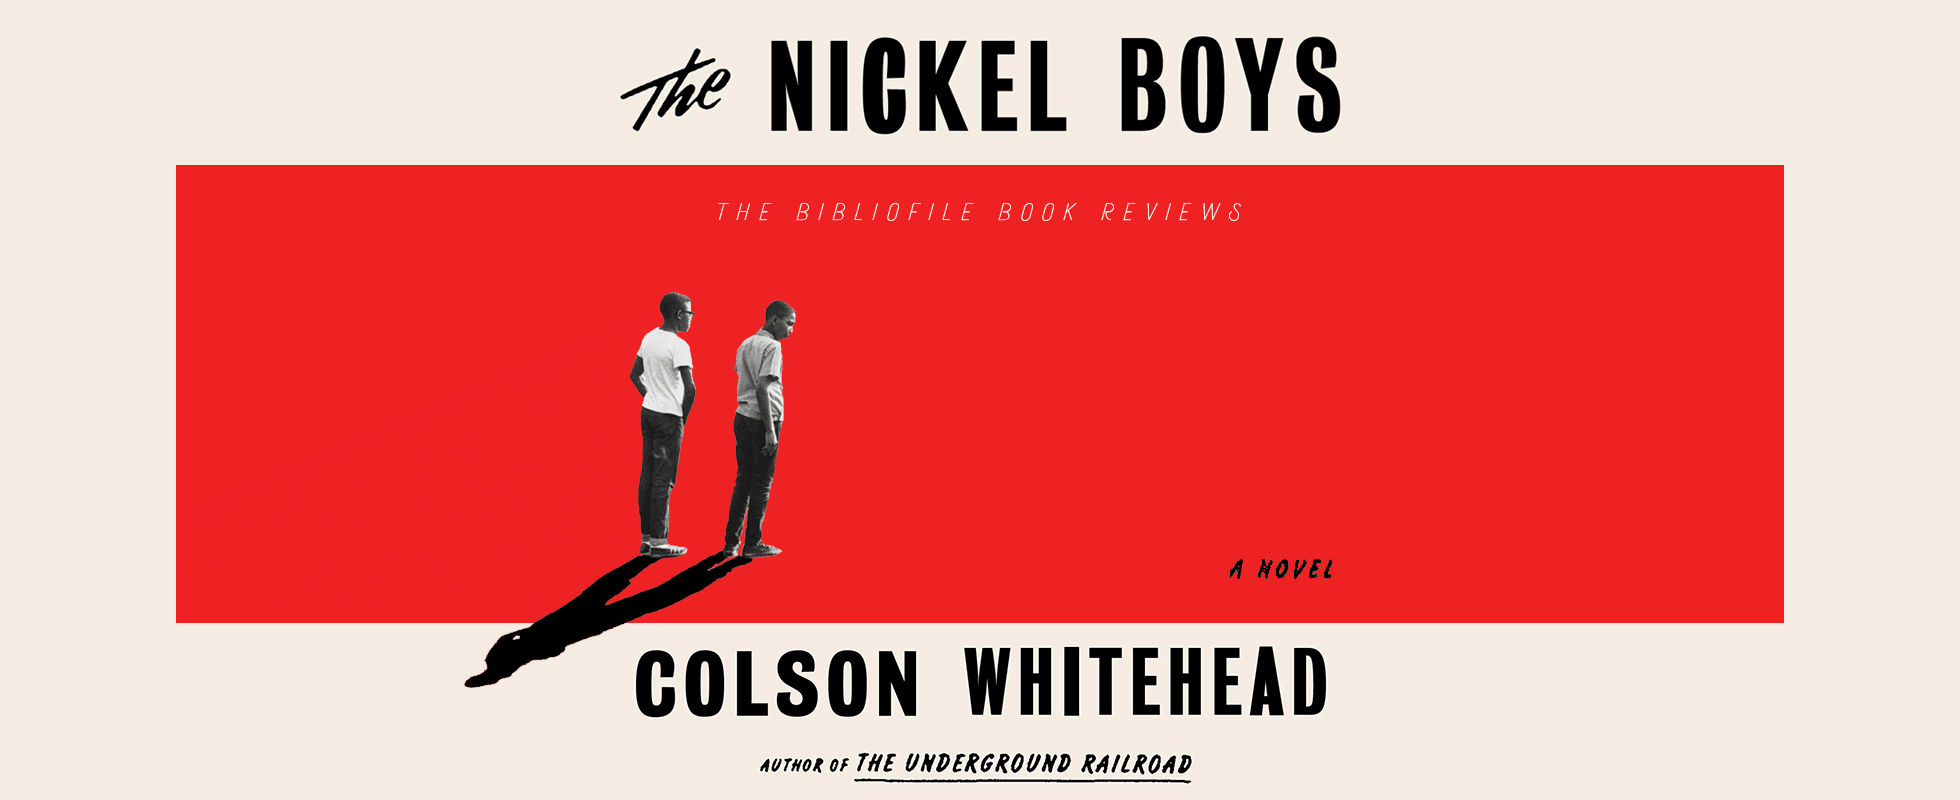 nickel boys colson whitehead summary review analysis